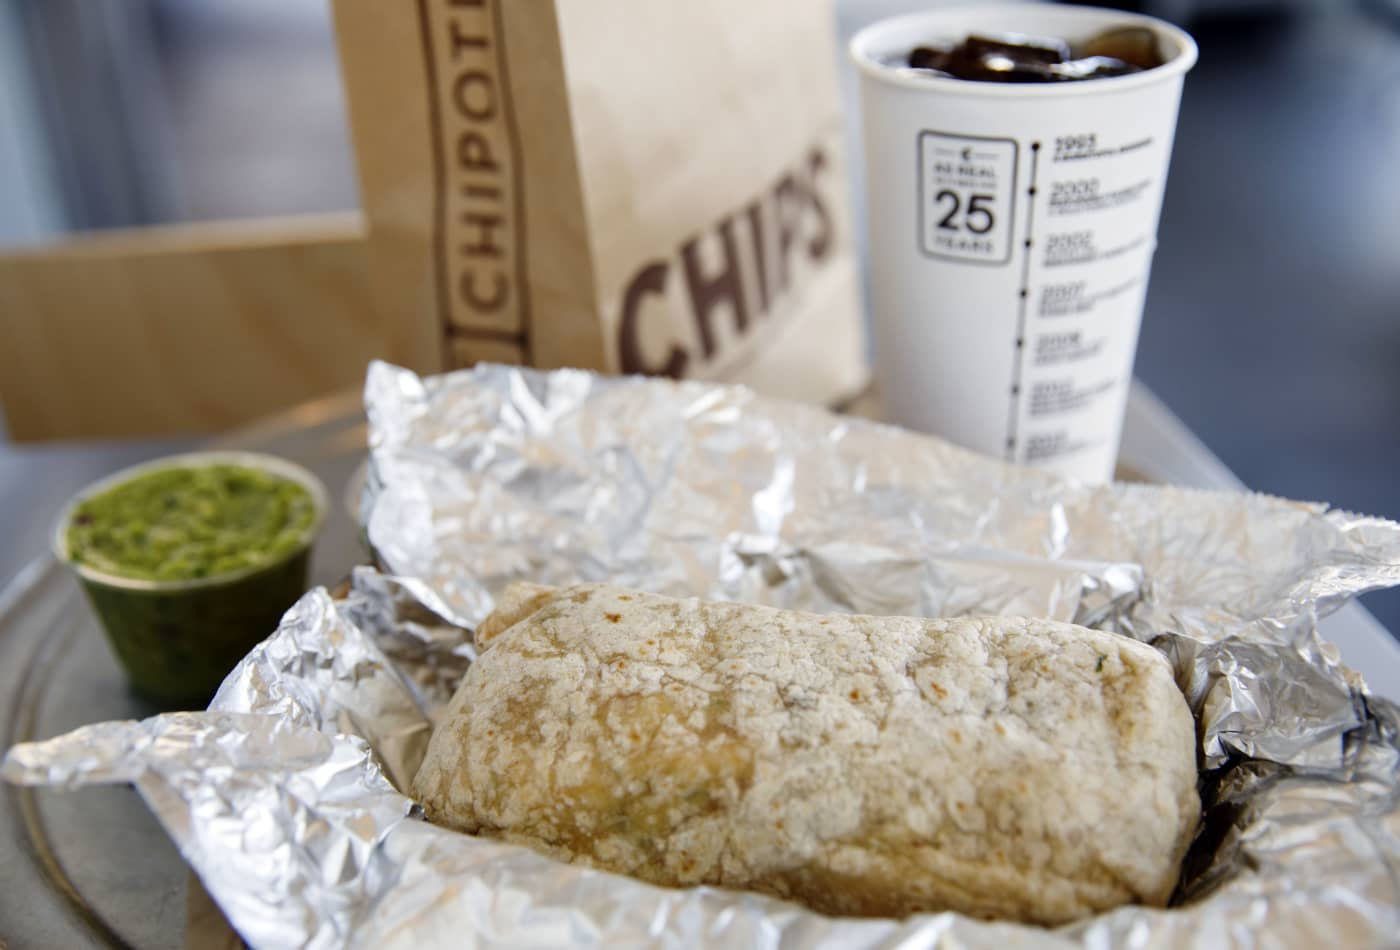 If you invested $1,000 in Chipotle 10 years ago, here's how much money you'd have now